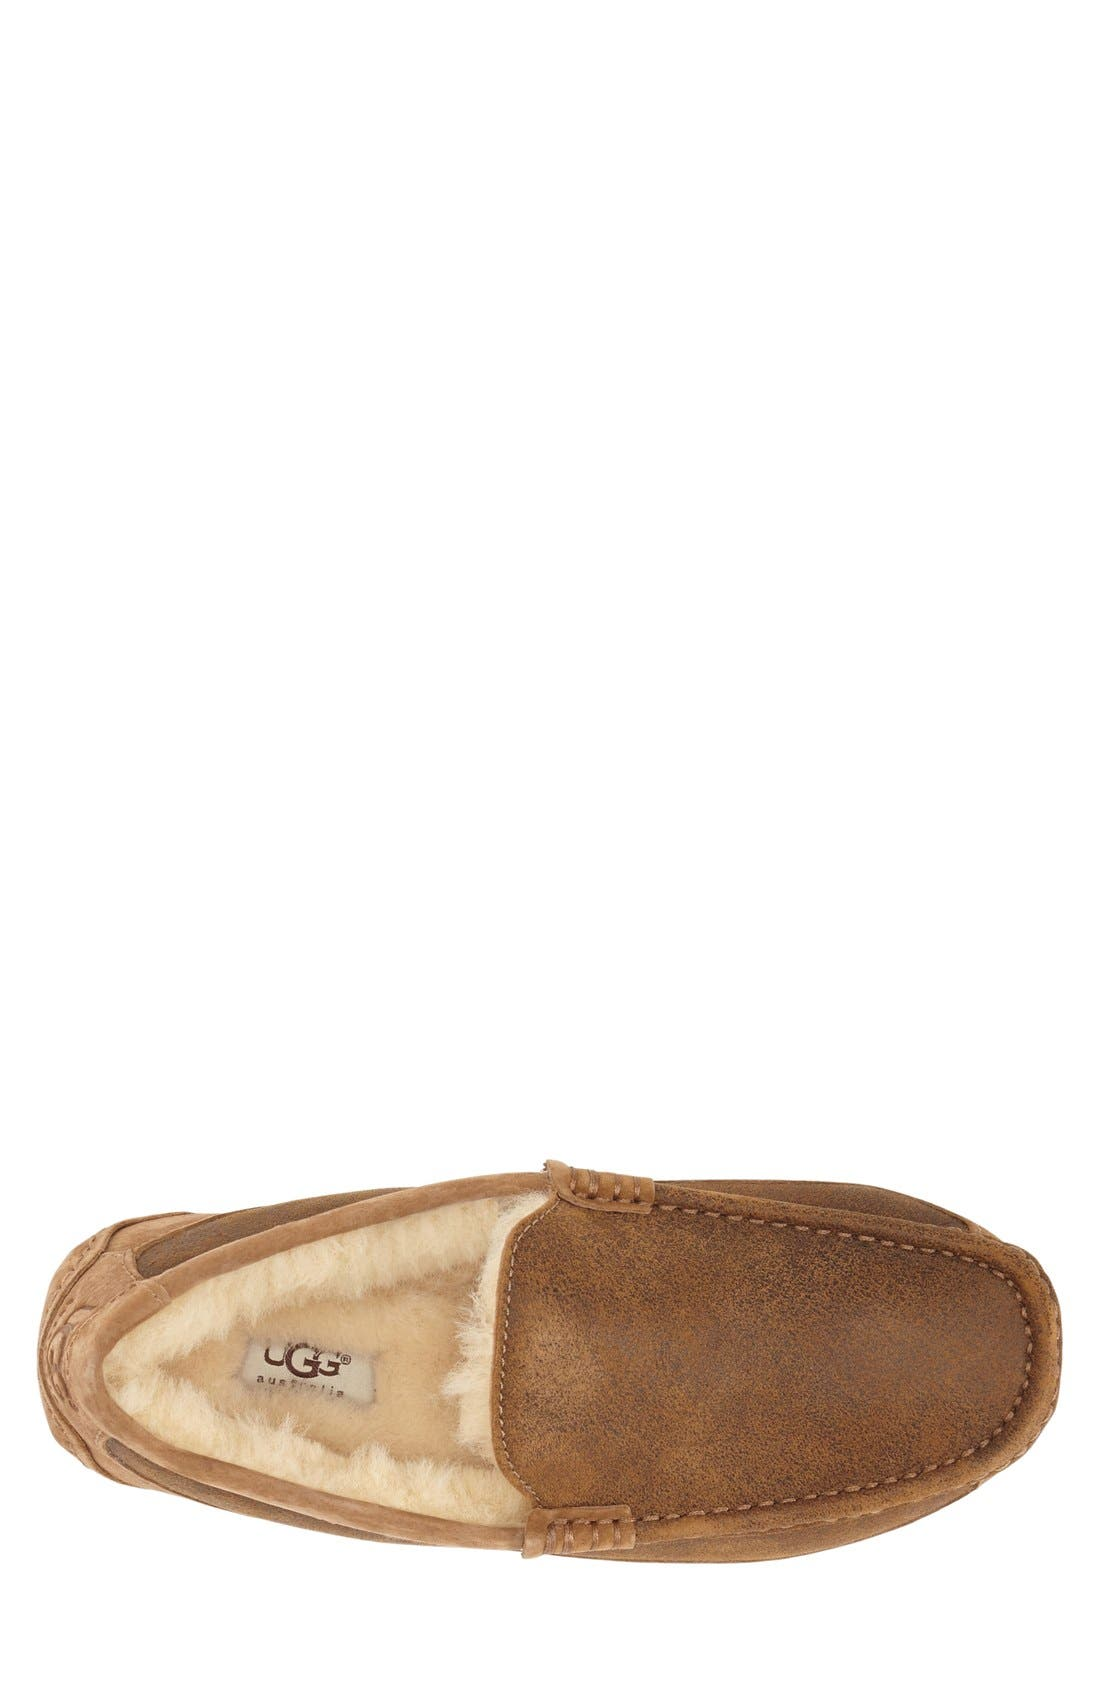 Alternate Image 3  - UGG® Ascot Bomber Slipper (Men)